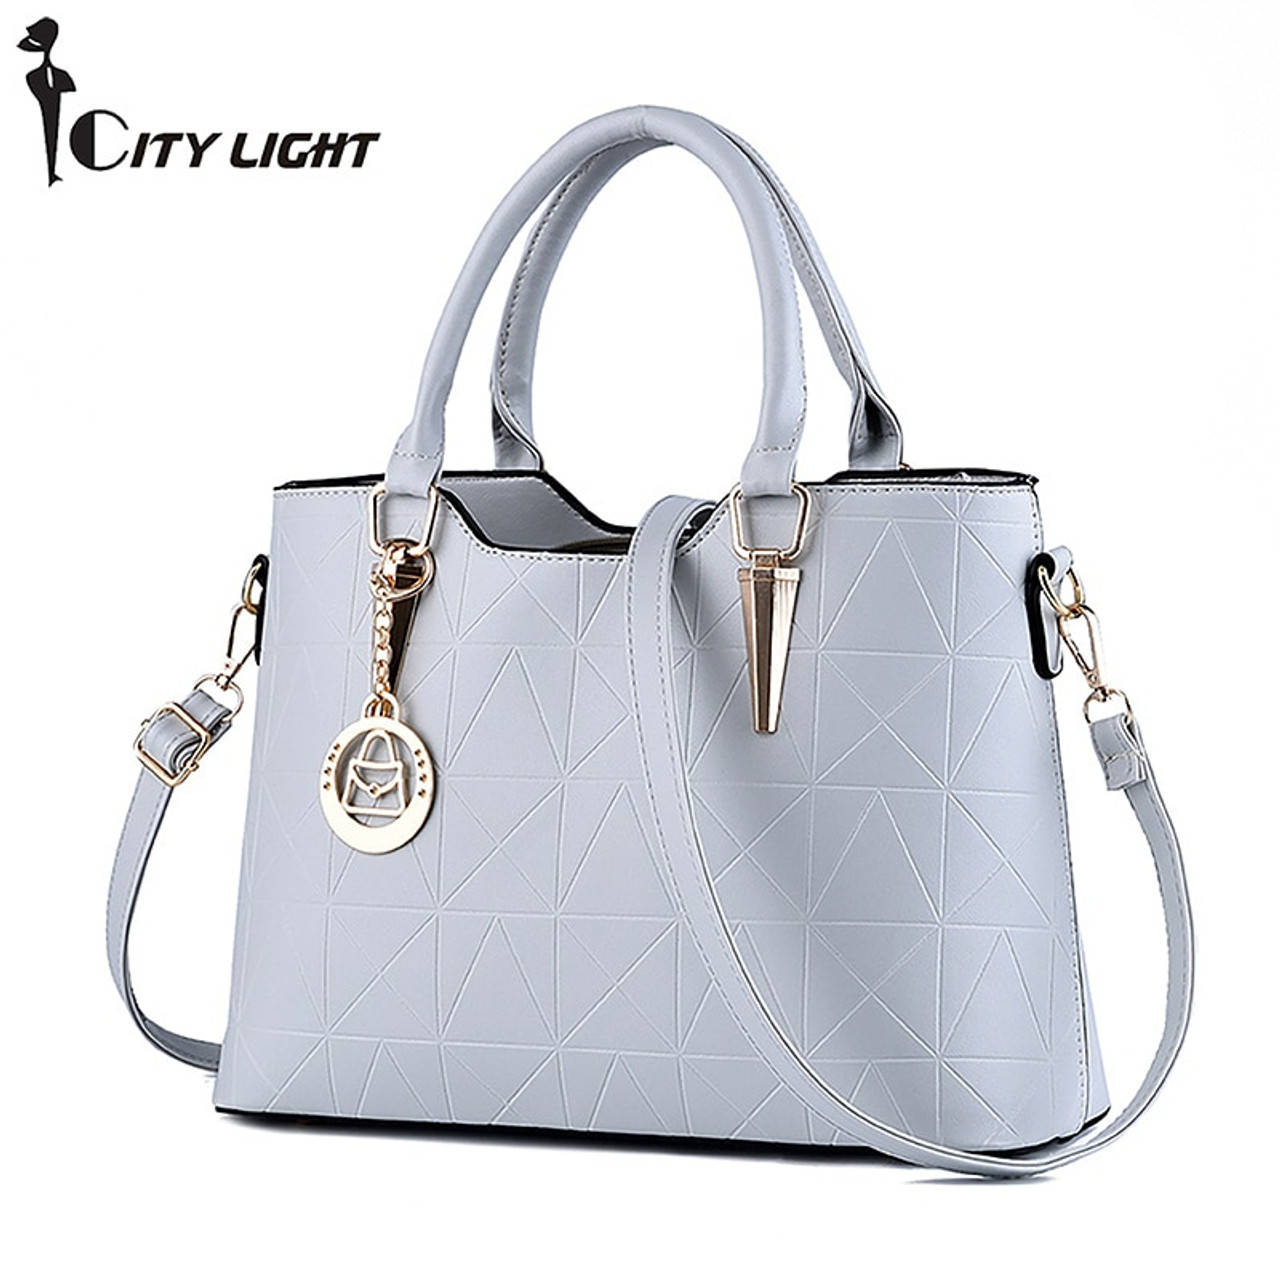 17c99c49bd Brand Fashion Fur Women Bag Handbags Women Famous Designer Women Leather  Handbags Luxury Ladies Hand Bags ...